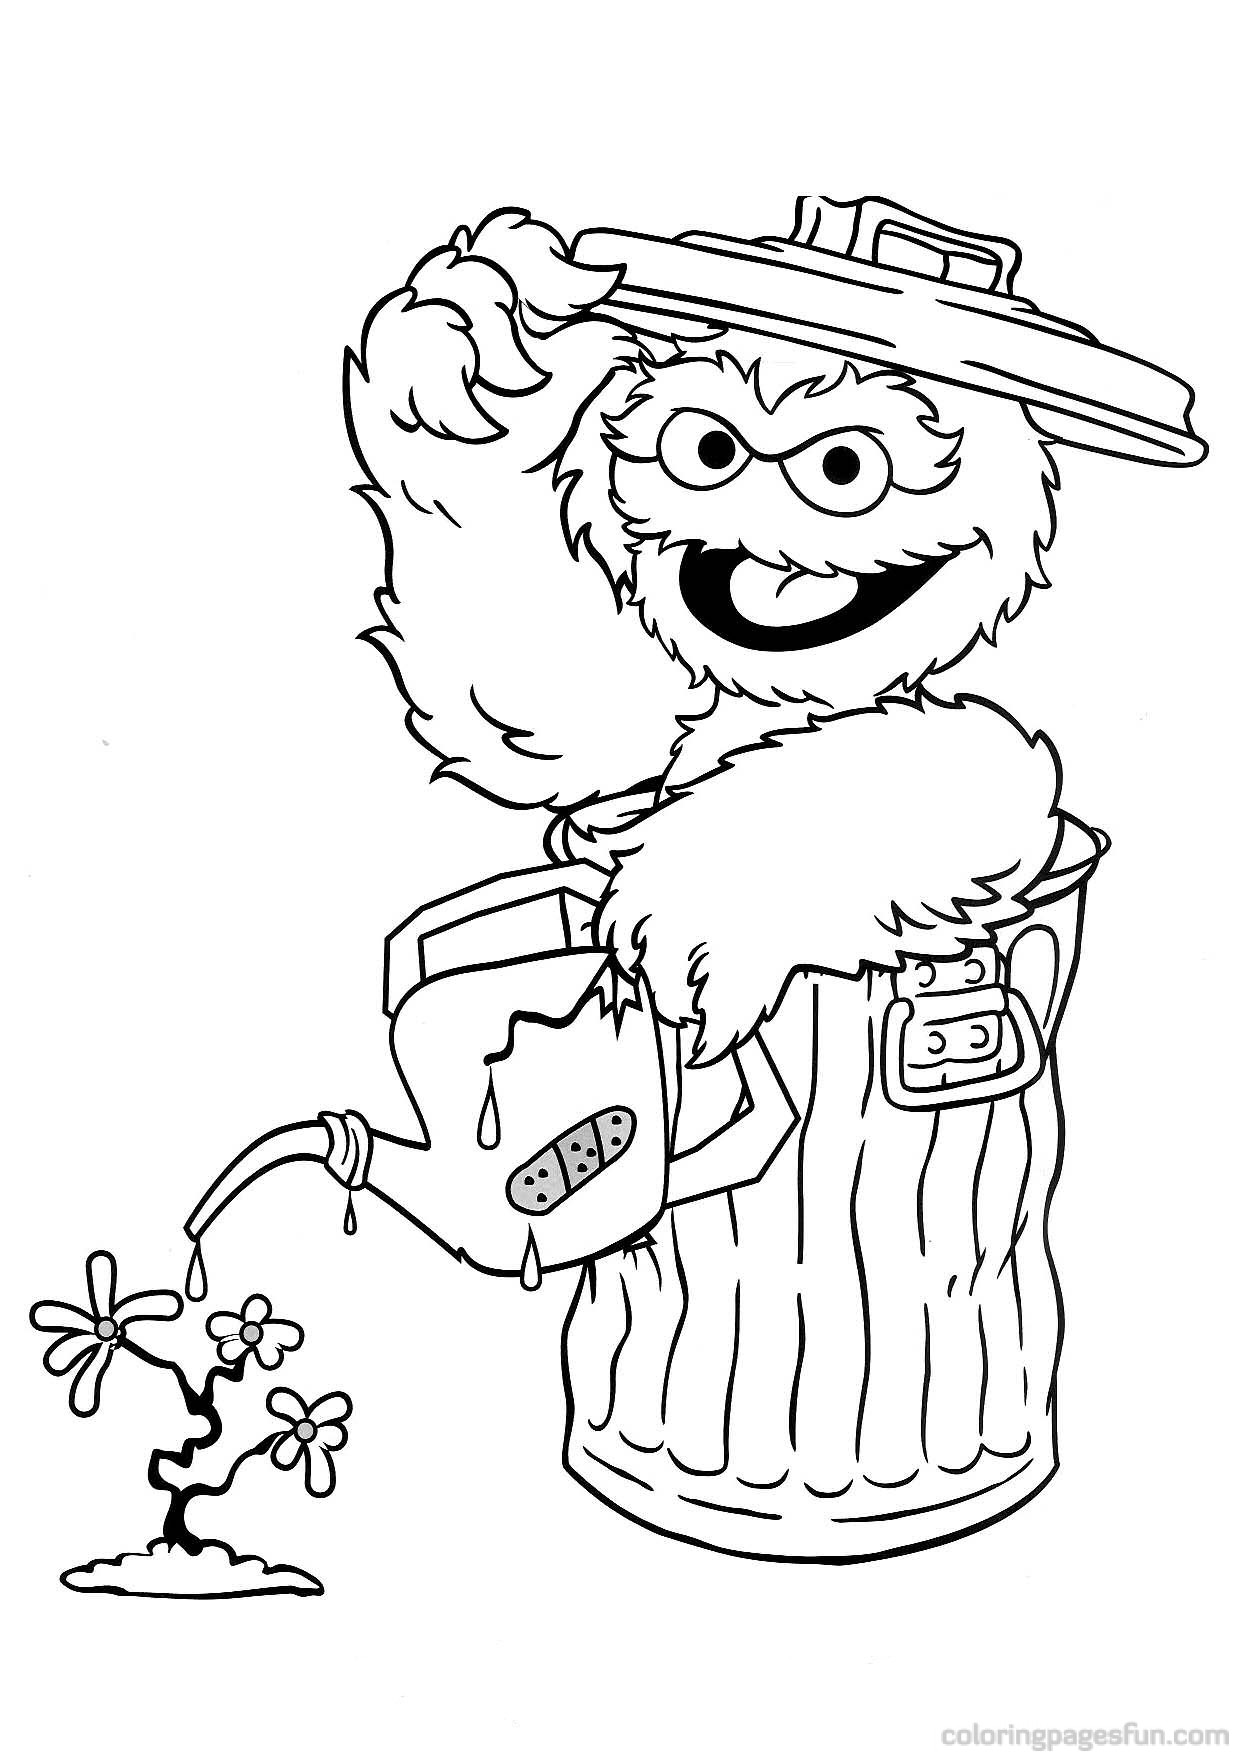 coloring sesame street printables sesame street coloring pages to download and print for free coloring printables sesame street